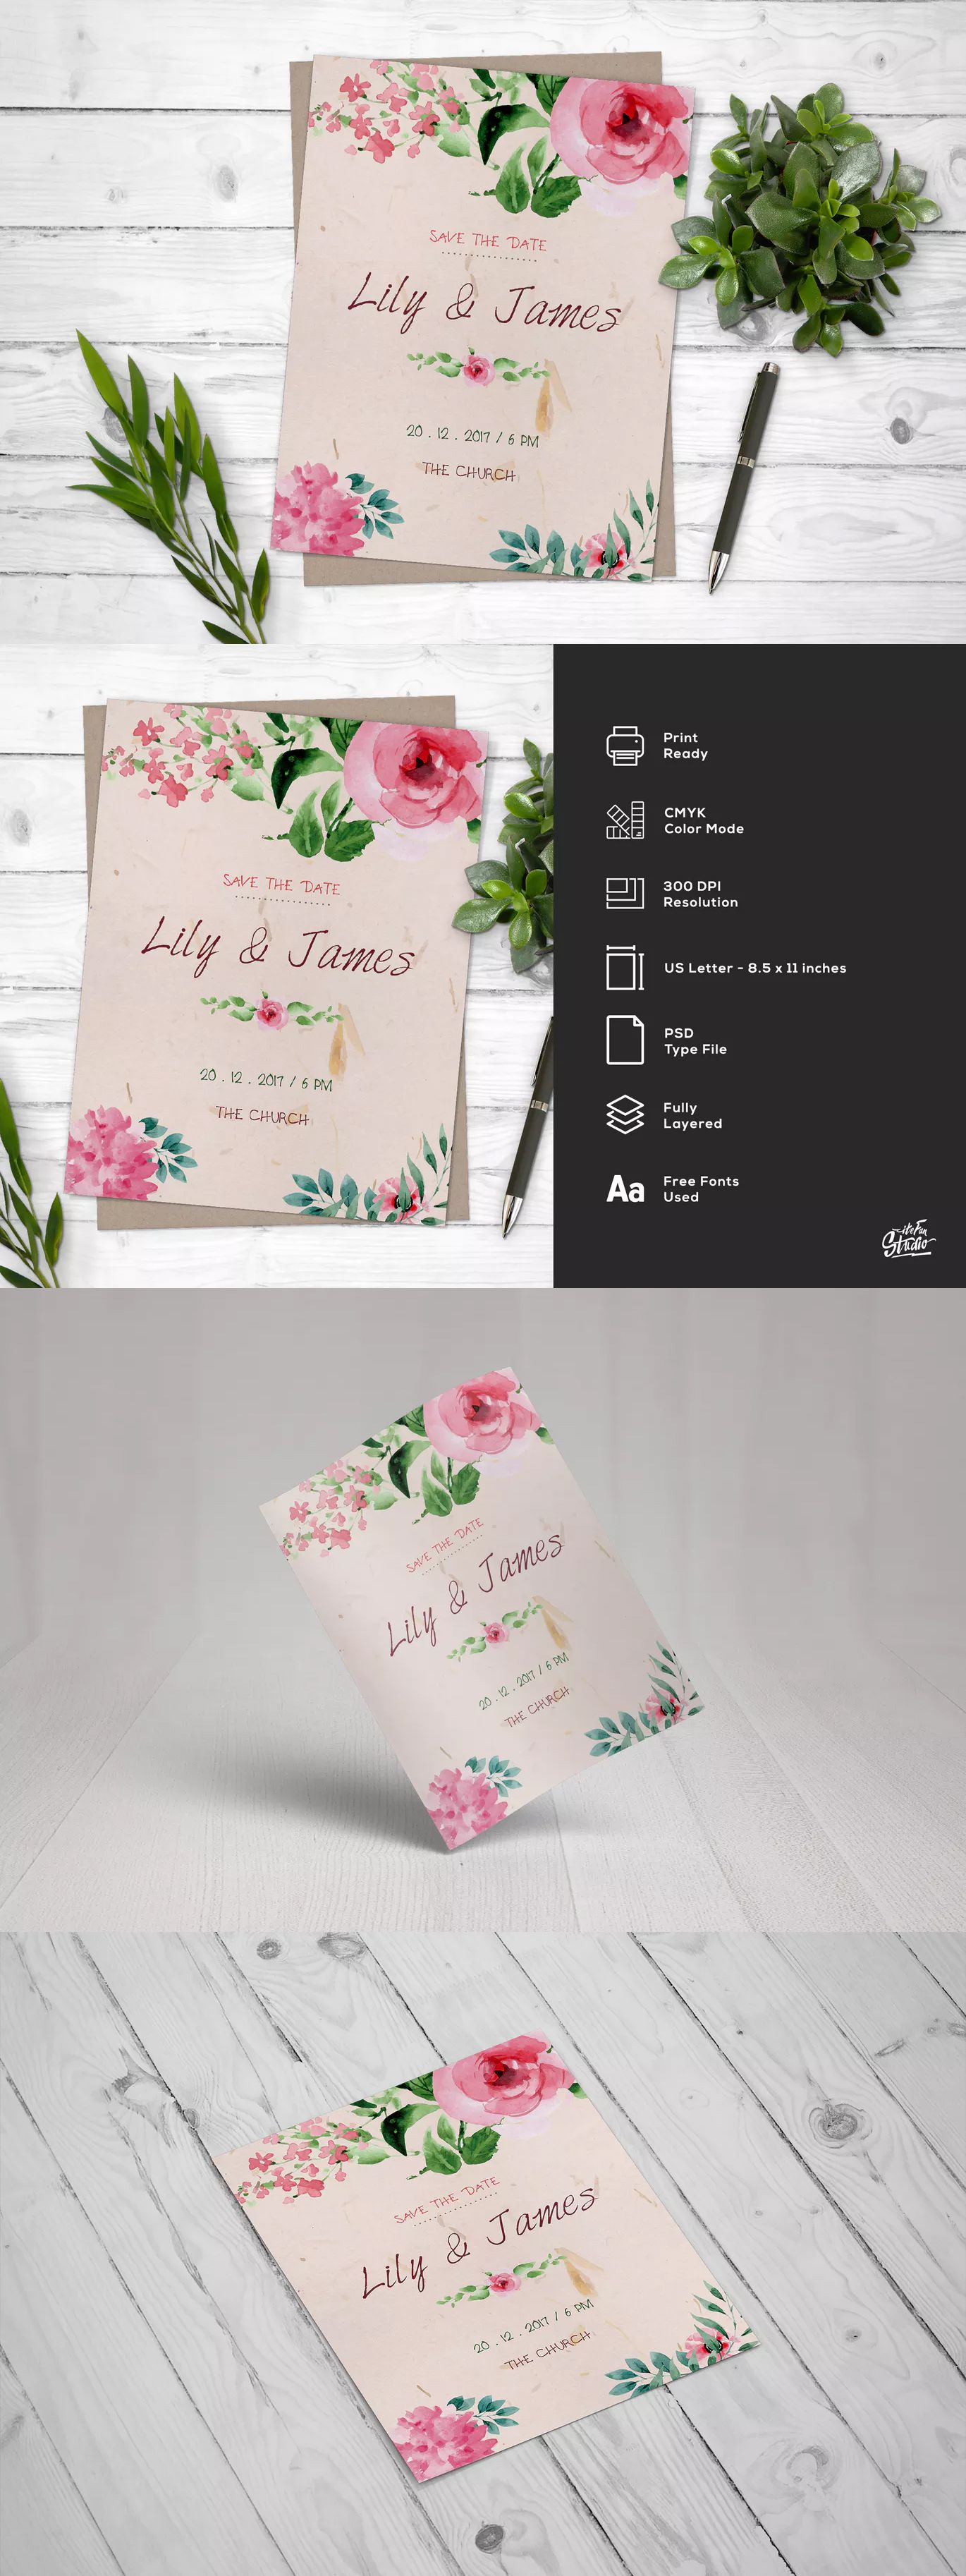 Watercolor Floral Save The Date Wedding Flyer Template Psd Us Letter